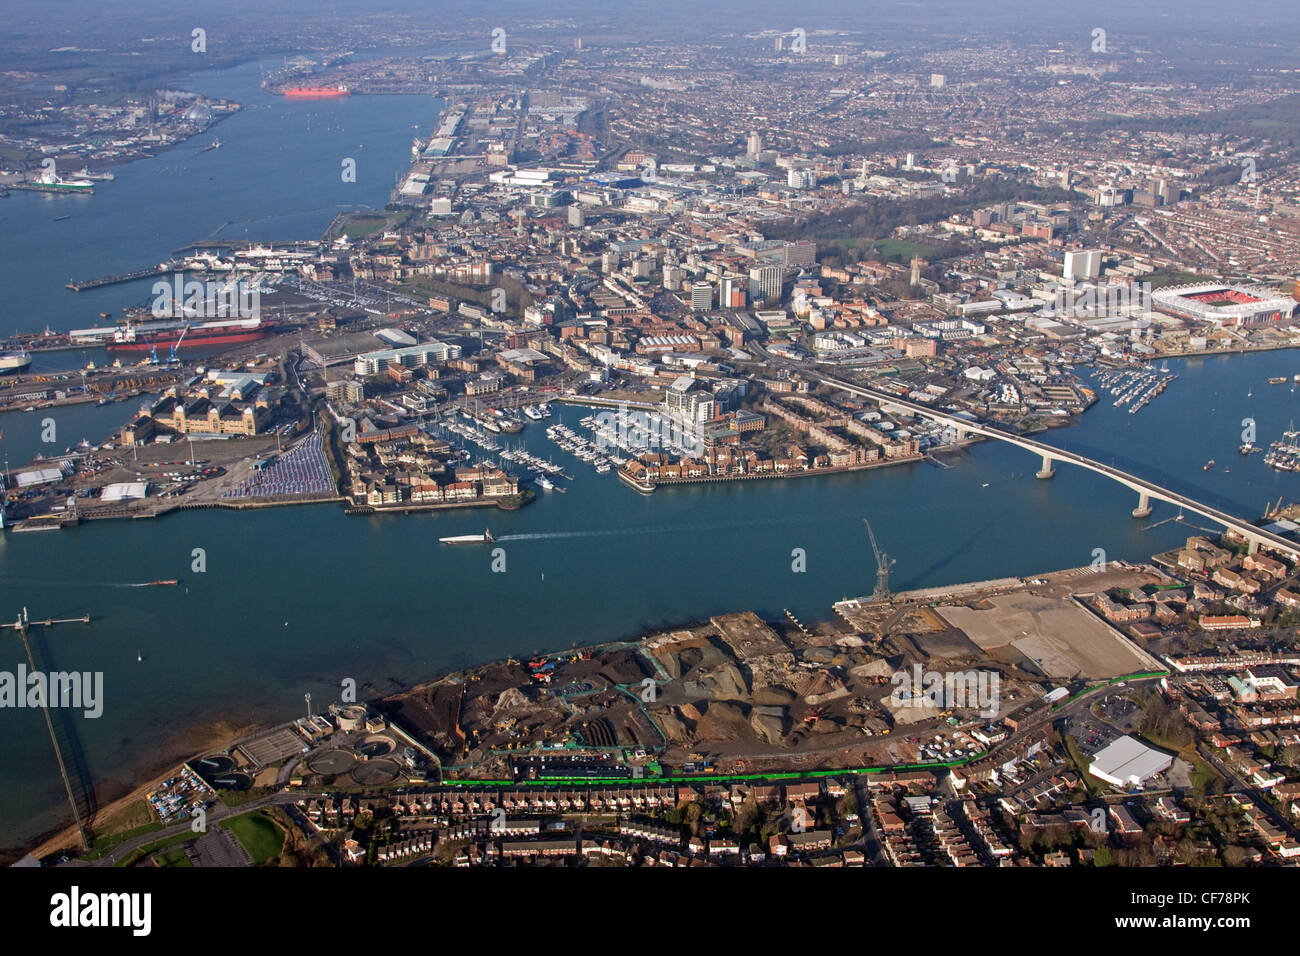 Aerial view of Southampton across River Itchen and with the River Test - Stock Image